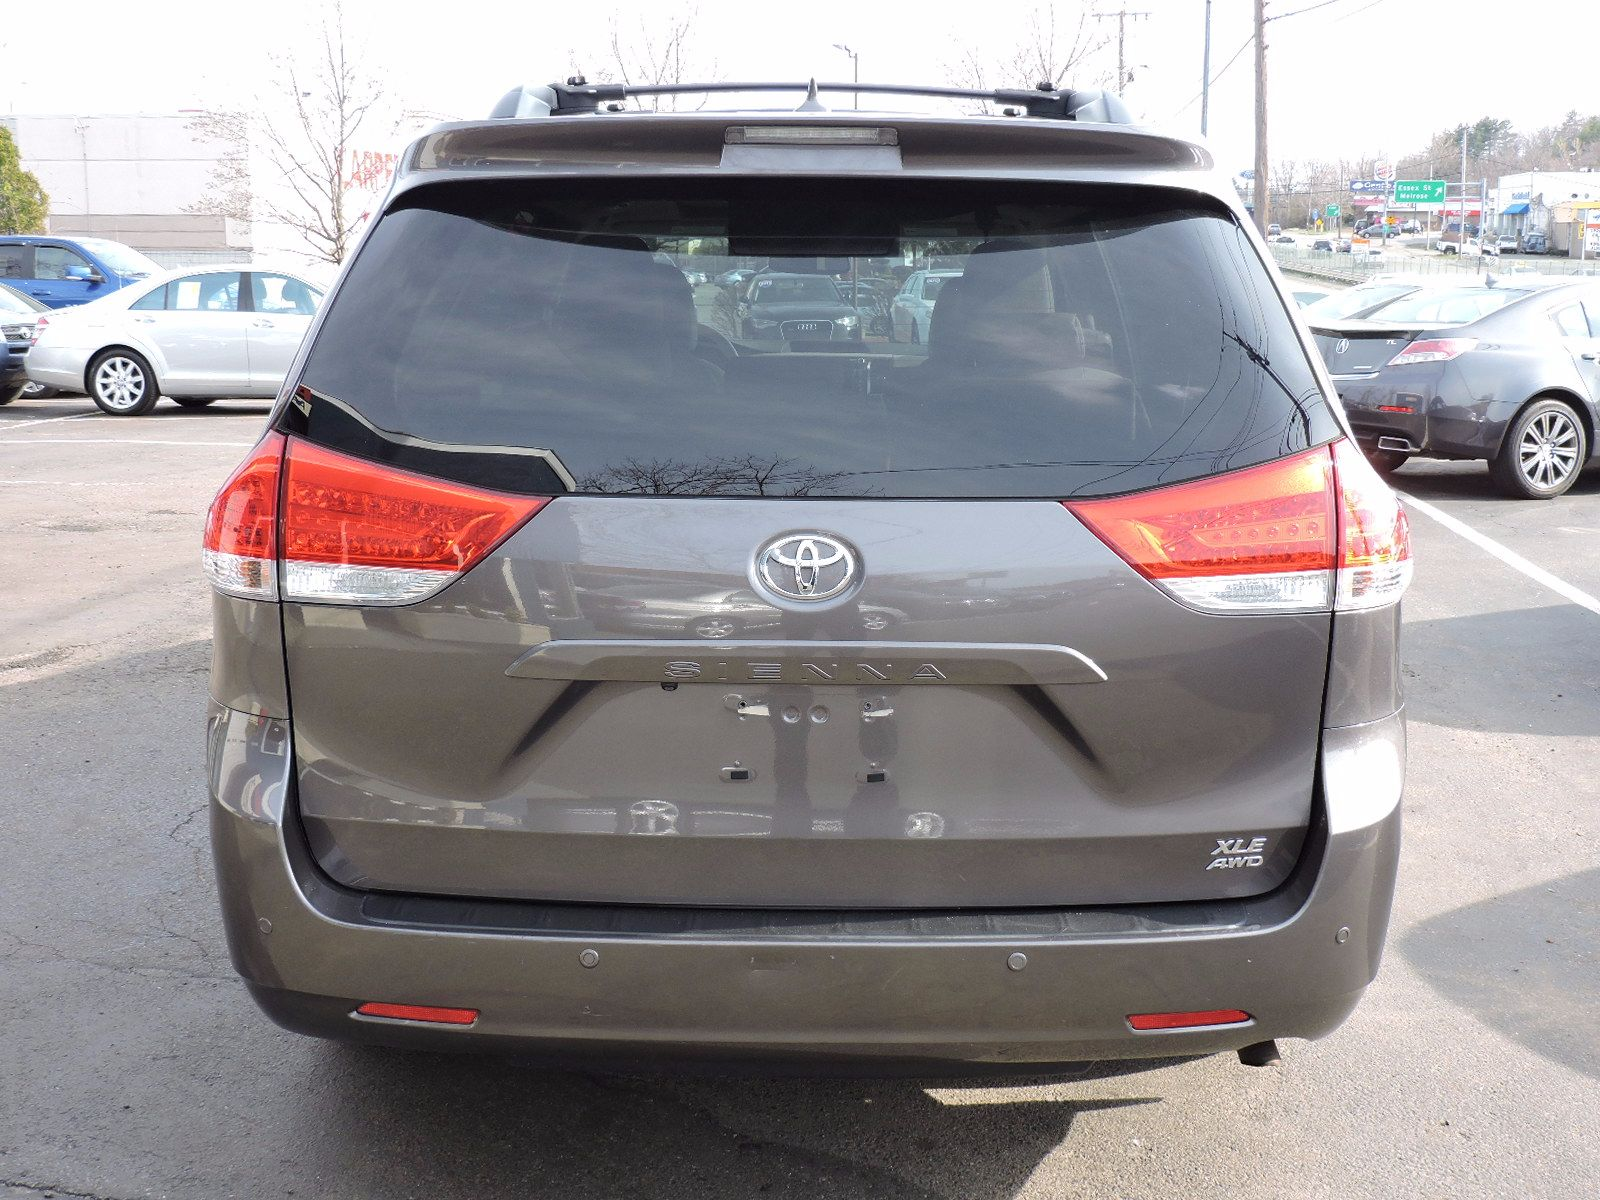 2012 Toyota Sienna XLE - Limited - All Wheel Drive - Navigation - DVD